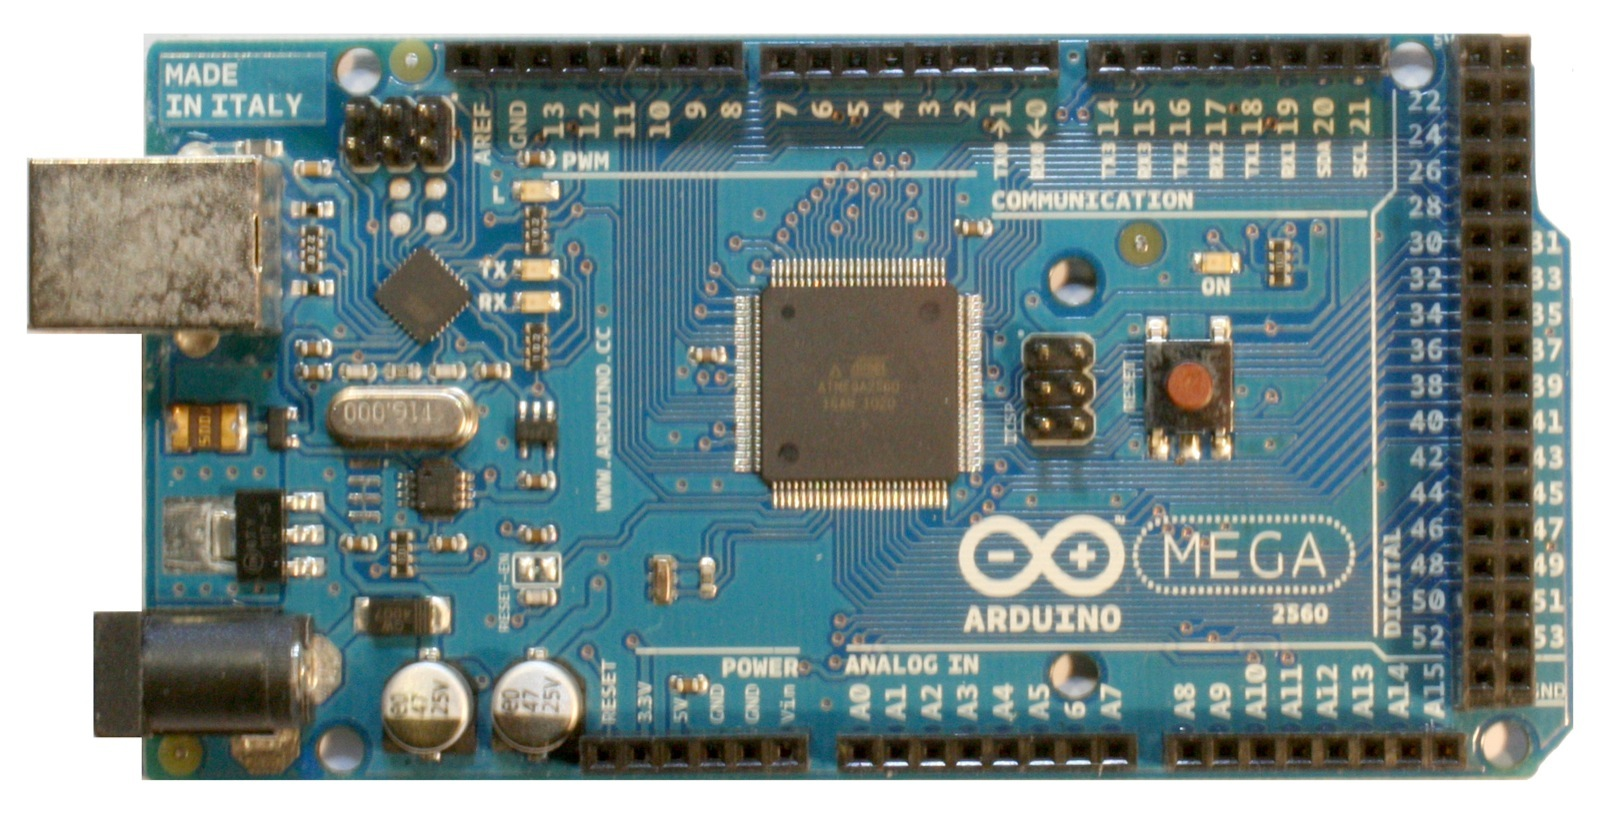 Make Your Own Arduino Nano Diy Arduino Nano likewise Sht21htu21d Humidity And Temperature Sensor furthermore Switching Power To Stepper Motor Drive Using Relay And Arduino in addition Arduino Circuit Design Program in addition Simple Arduino Uno Esp 8266 Integration Dba10b widget  ments. on arduino uno board schematic